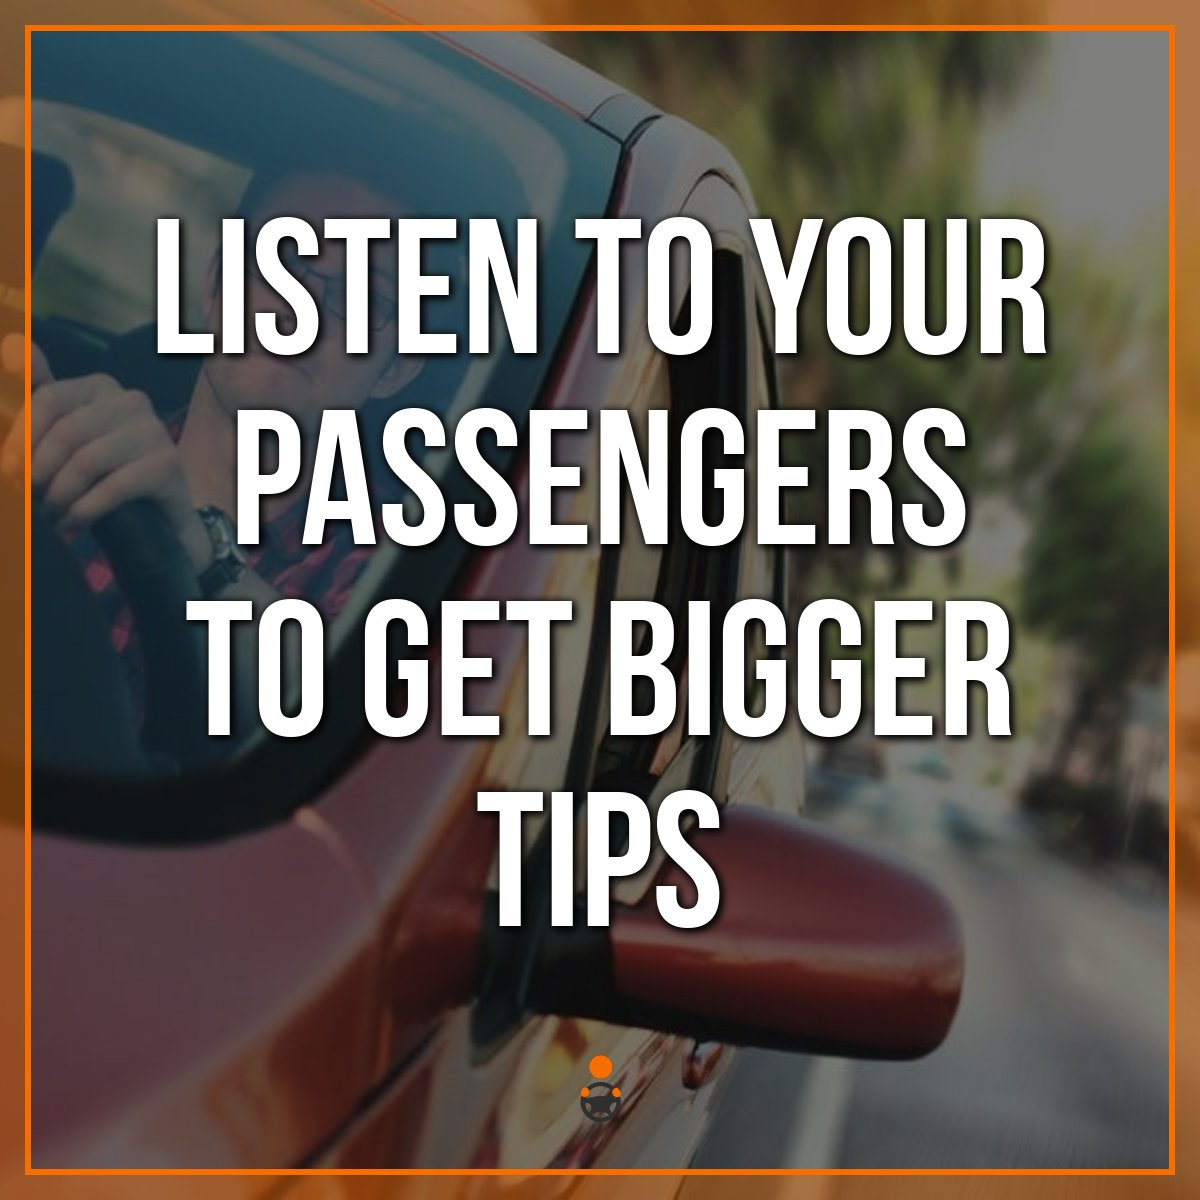 Uber Drivers – Get Bigger Tips By Listening To Your Passenger